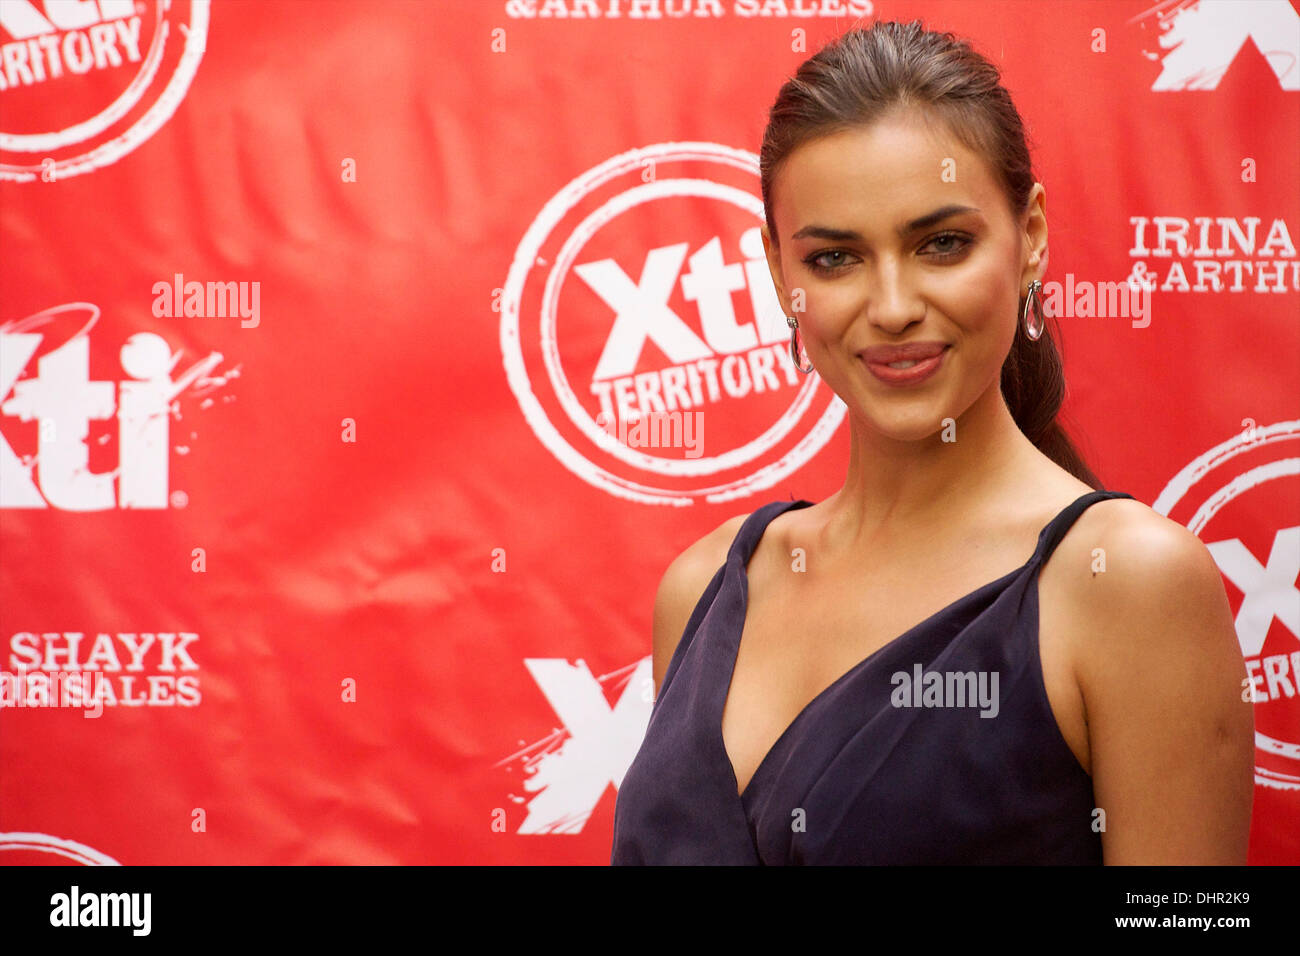 f98e4cb9 Irina Shayk The launch of 'Xti' shoes Autum-Winter 2012-13 collection